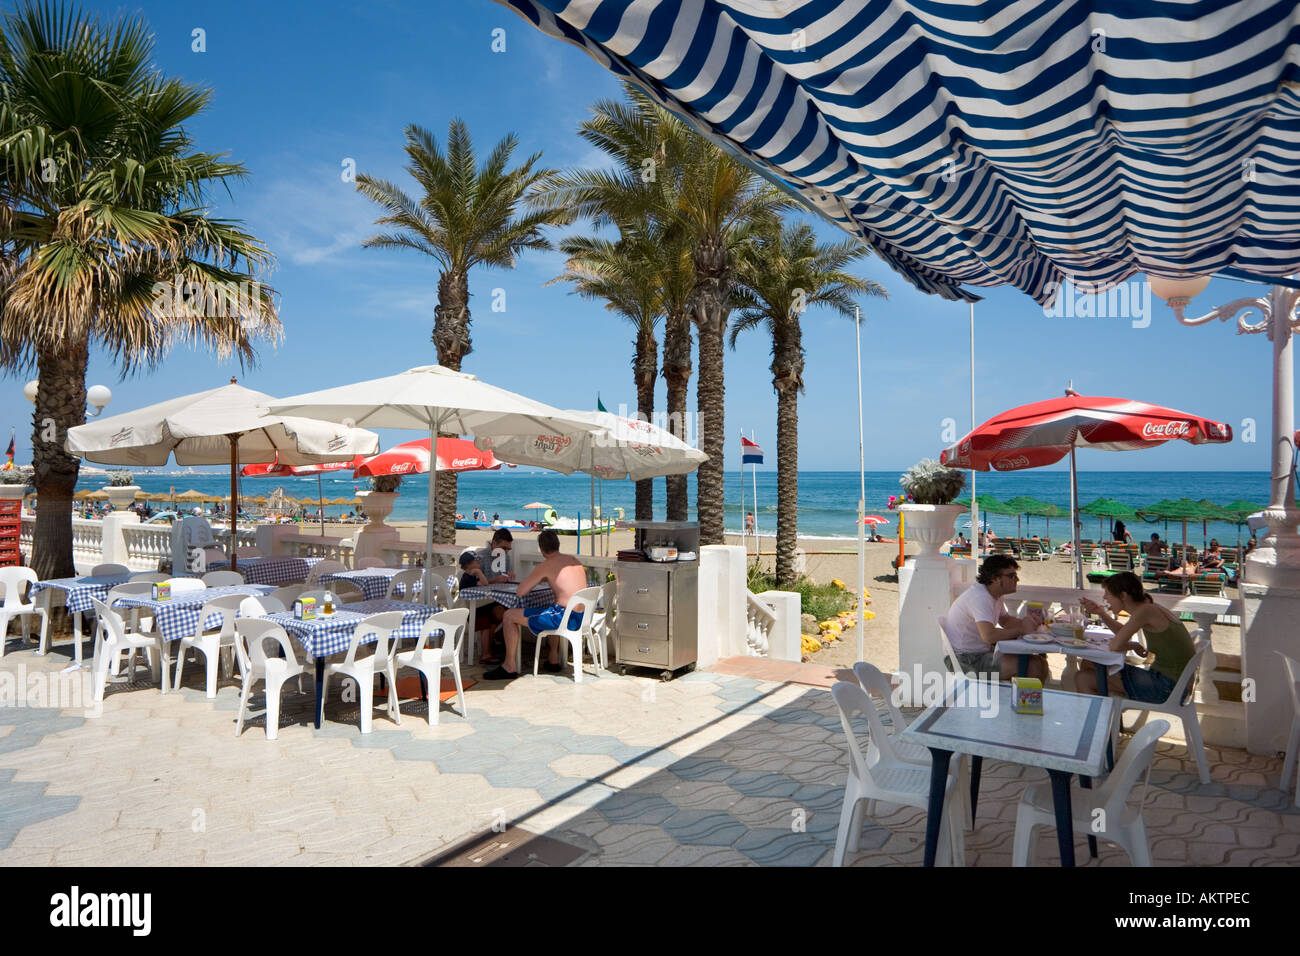 Seafront Cafe, Benalmadena, Costa del Sol, Andalucia, Spain - Stock Image